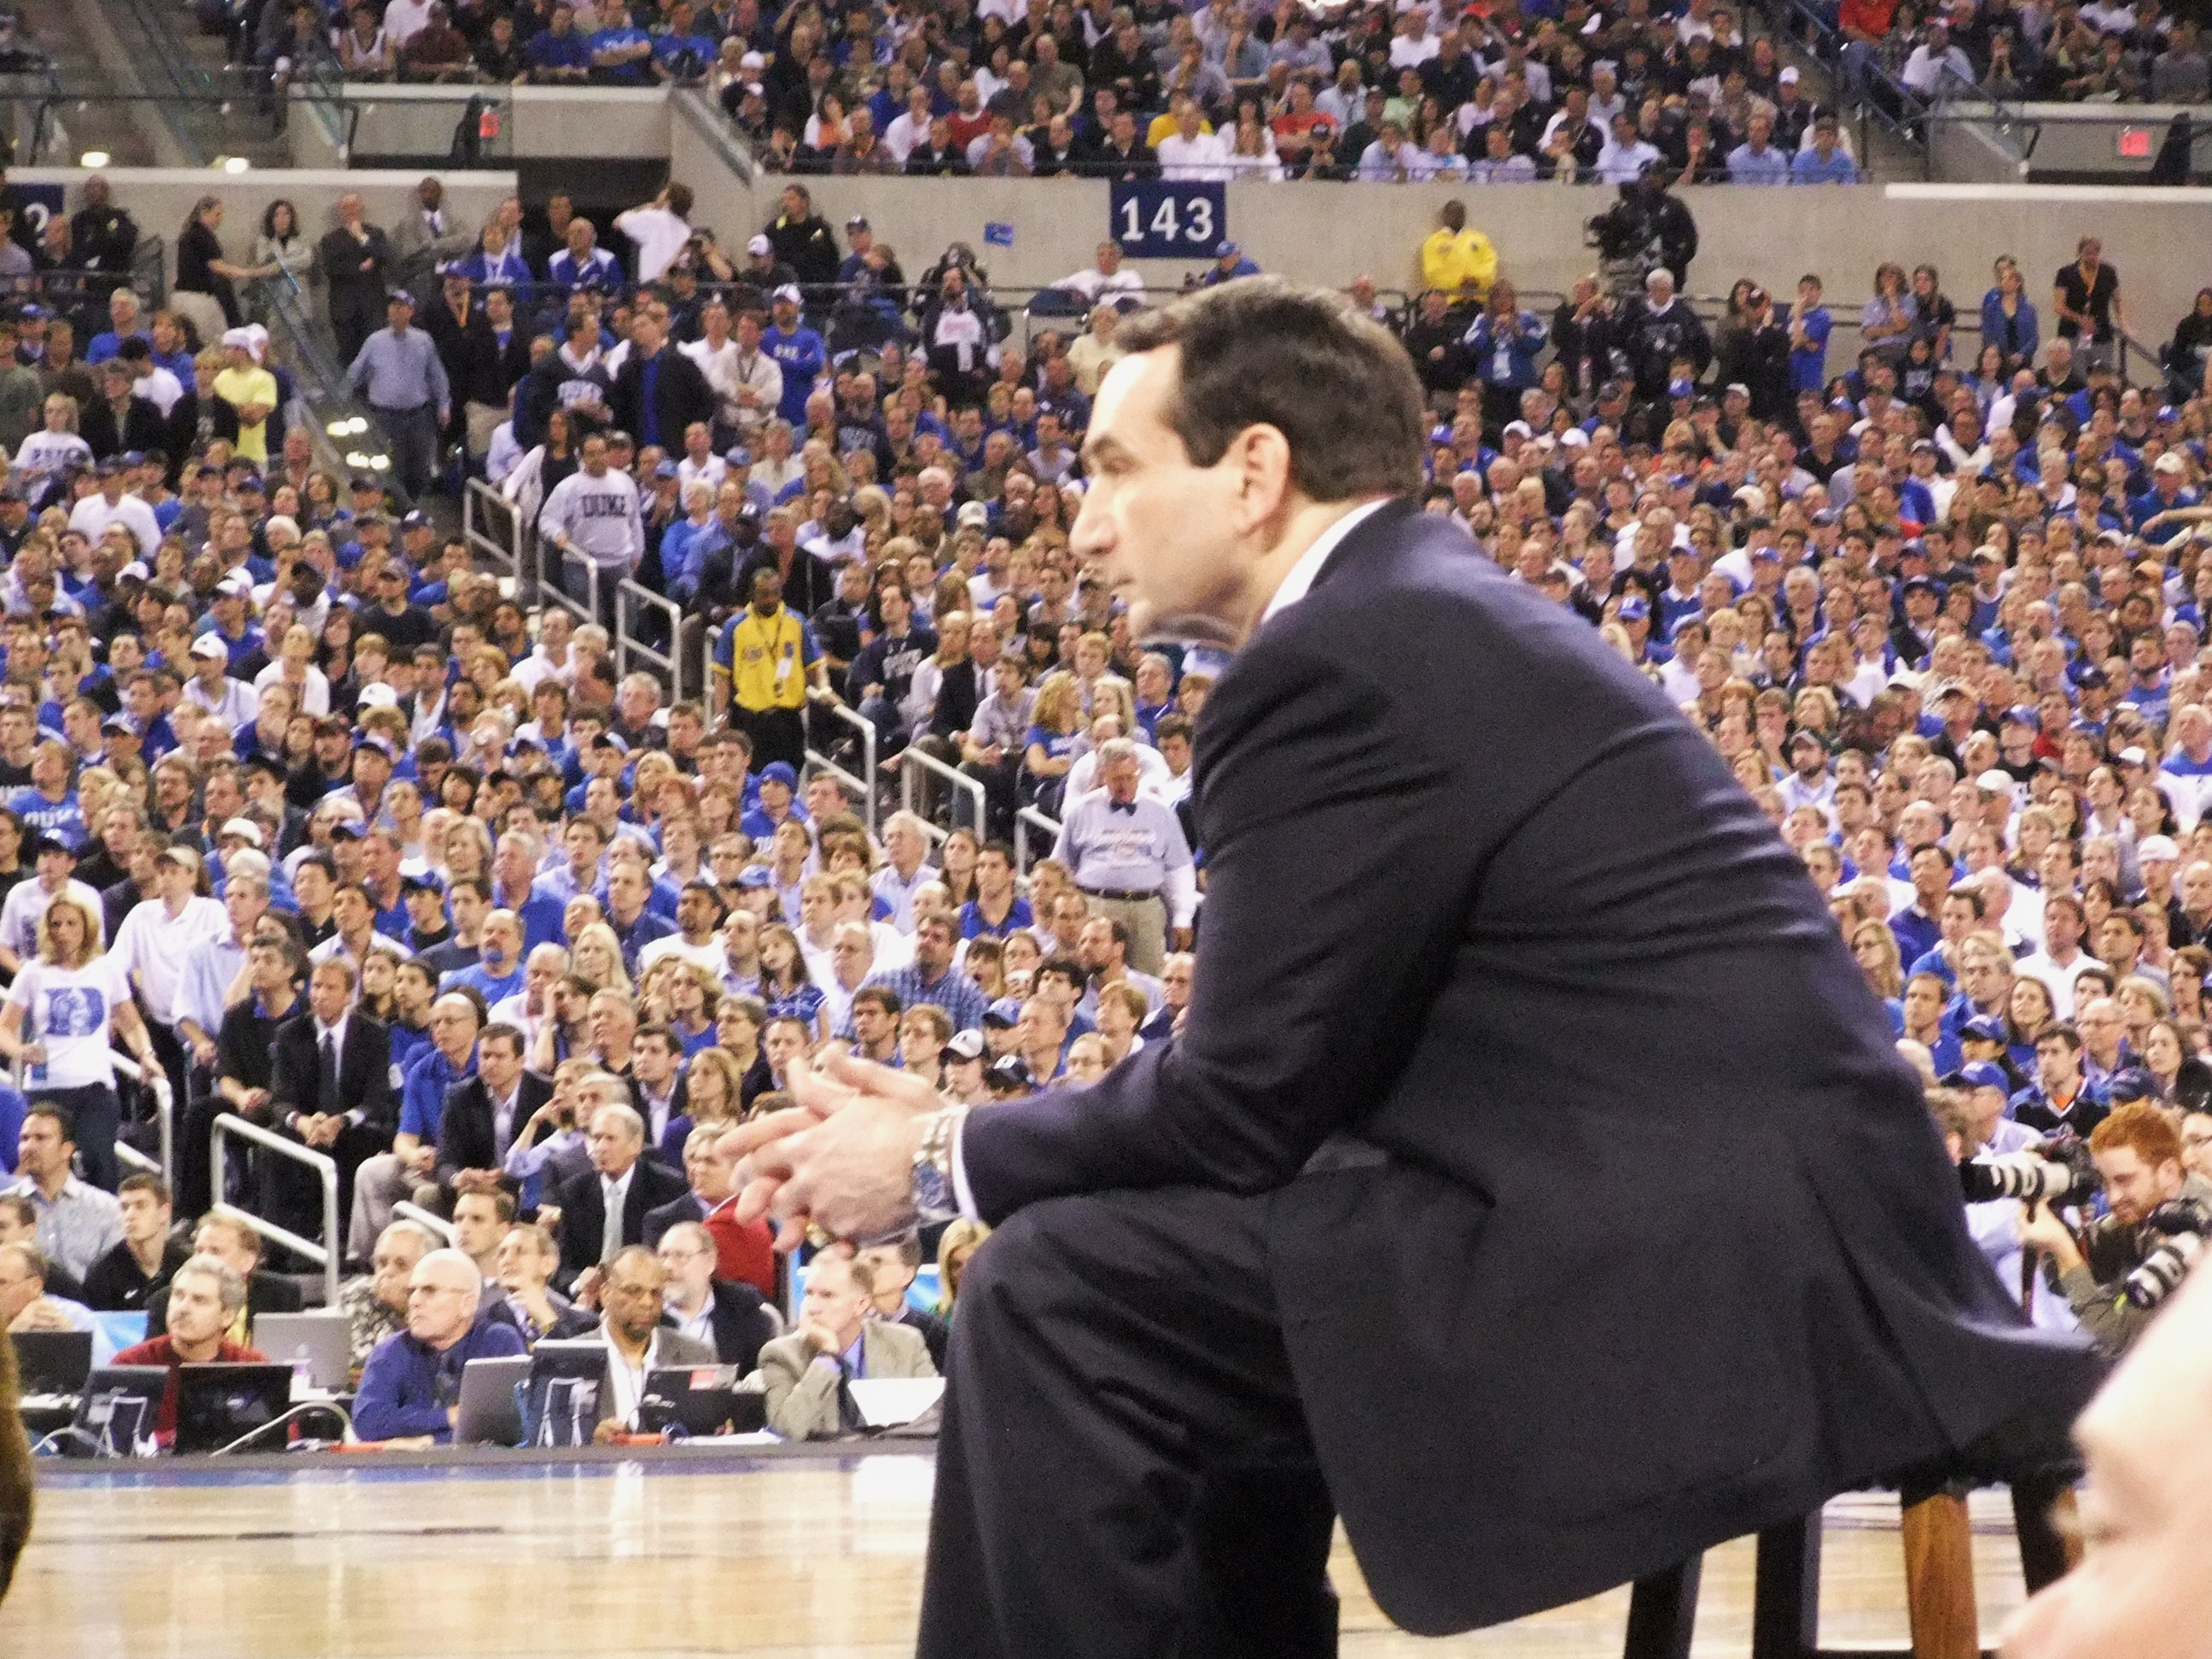 Coach K took out his NCAA stool to sit on while he adresses Duke fans during the Awards Banquet where Duke raised their 2010 Nationa Championship banner to the ceiling.  copyright BDN Photo